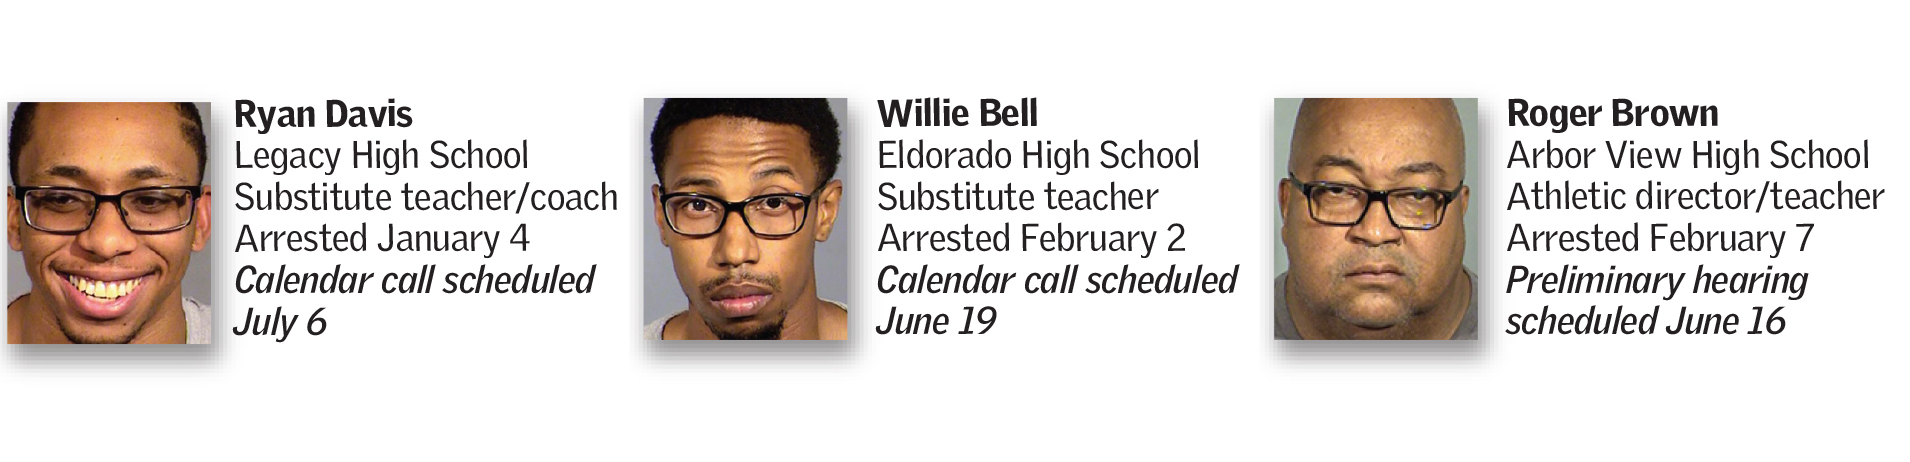 ccsd arrests